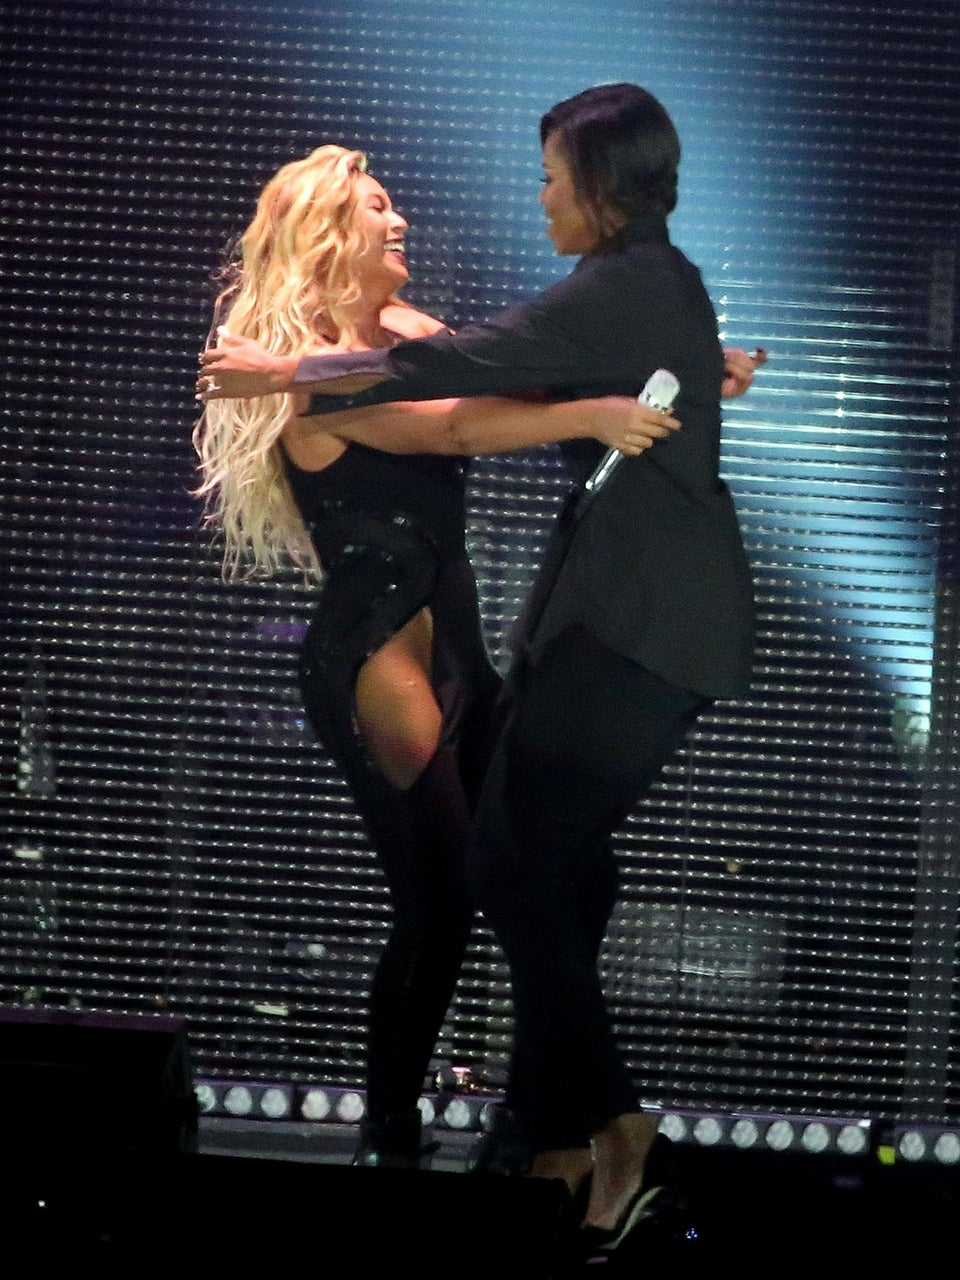 Michelle Obama Joins Beyoncé on Stage at Global Citizen Festival